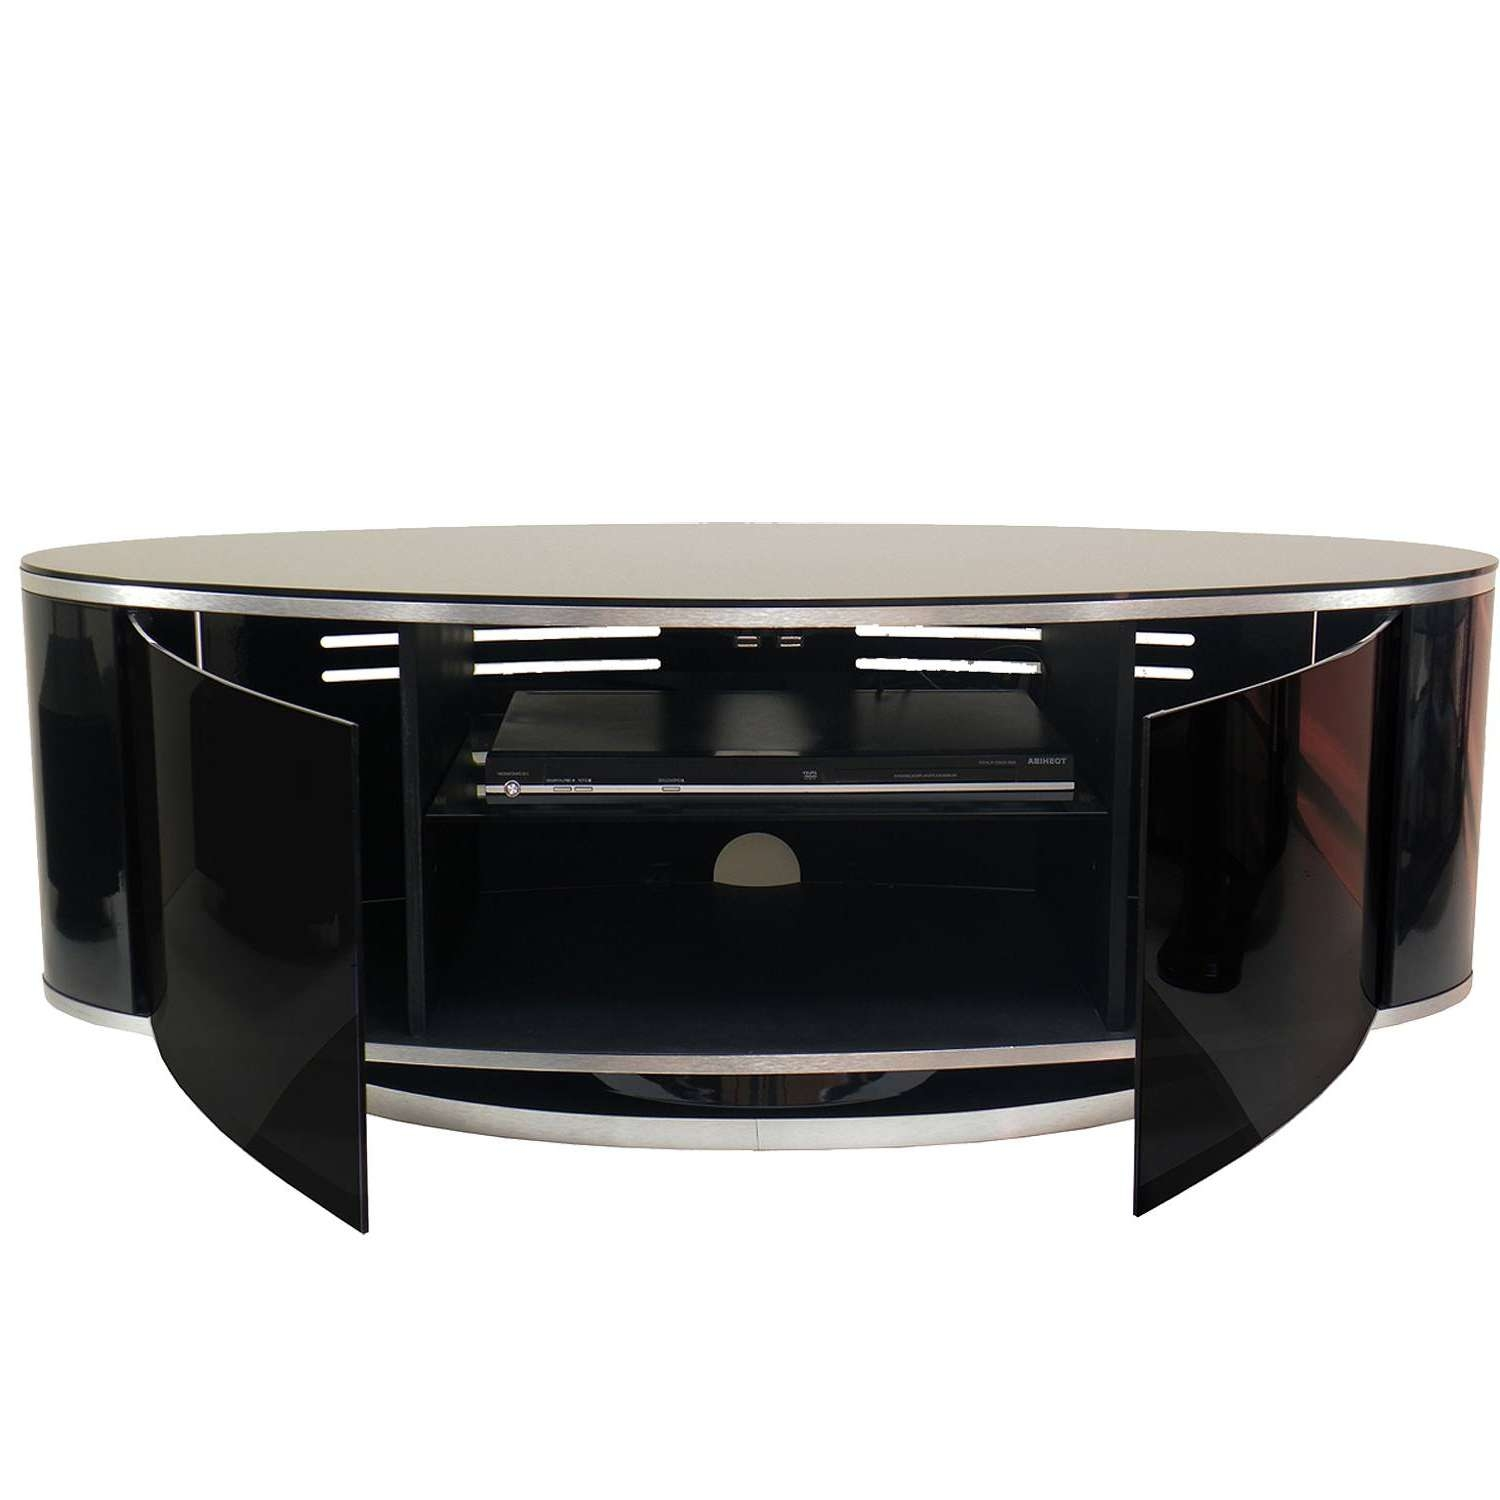 "Mda Designs Luna Av High Gloss Black Oval Tv Cabinet Up To 55"" Tvs For Tv Cabinets Black High Gloss (View 14 of 20)"